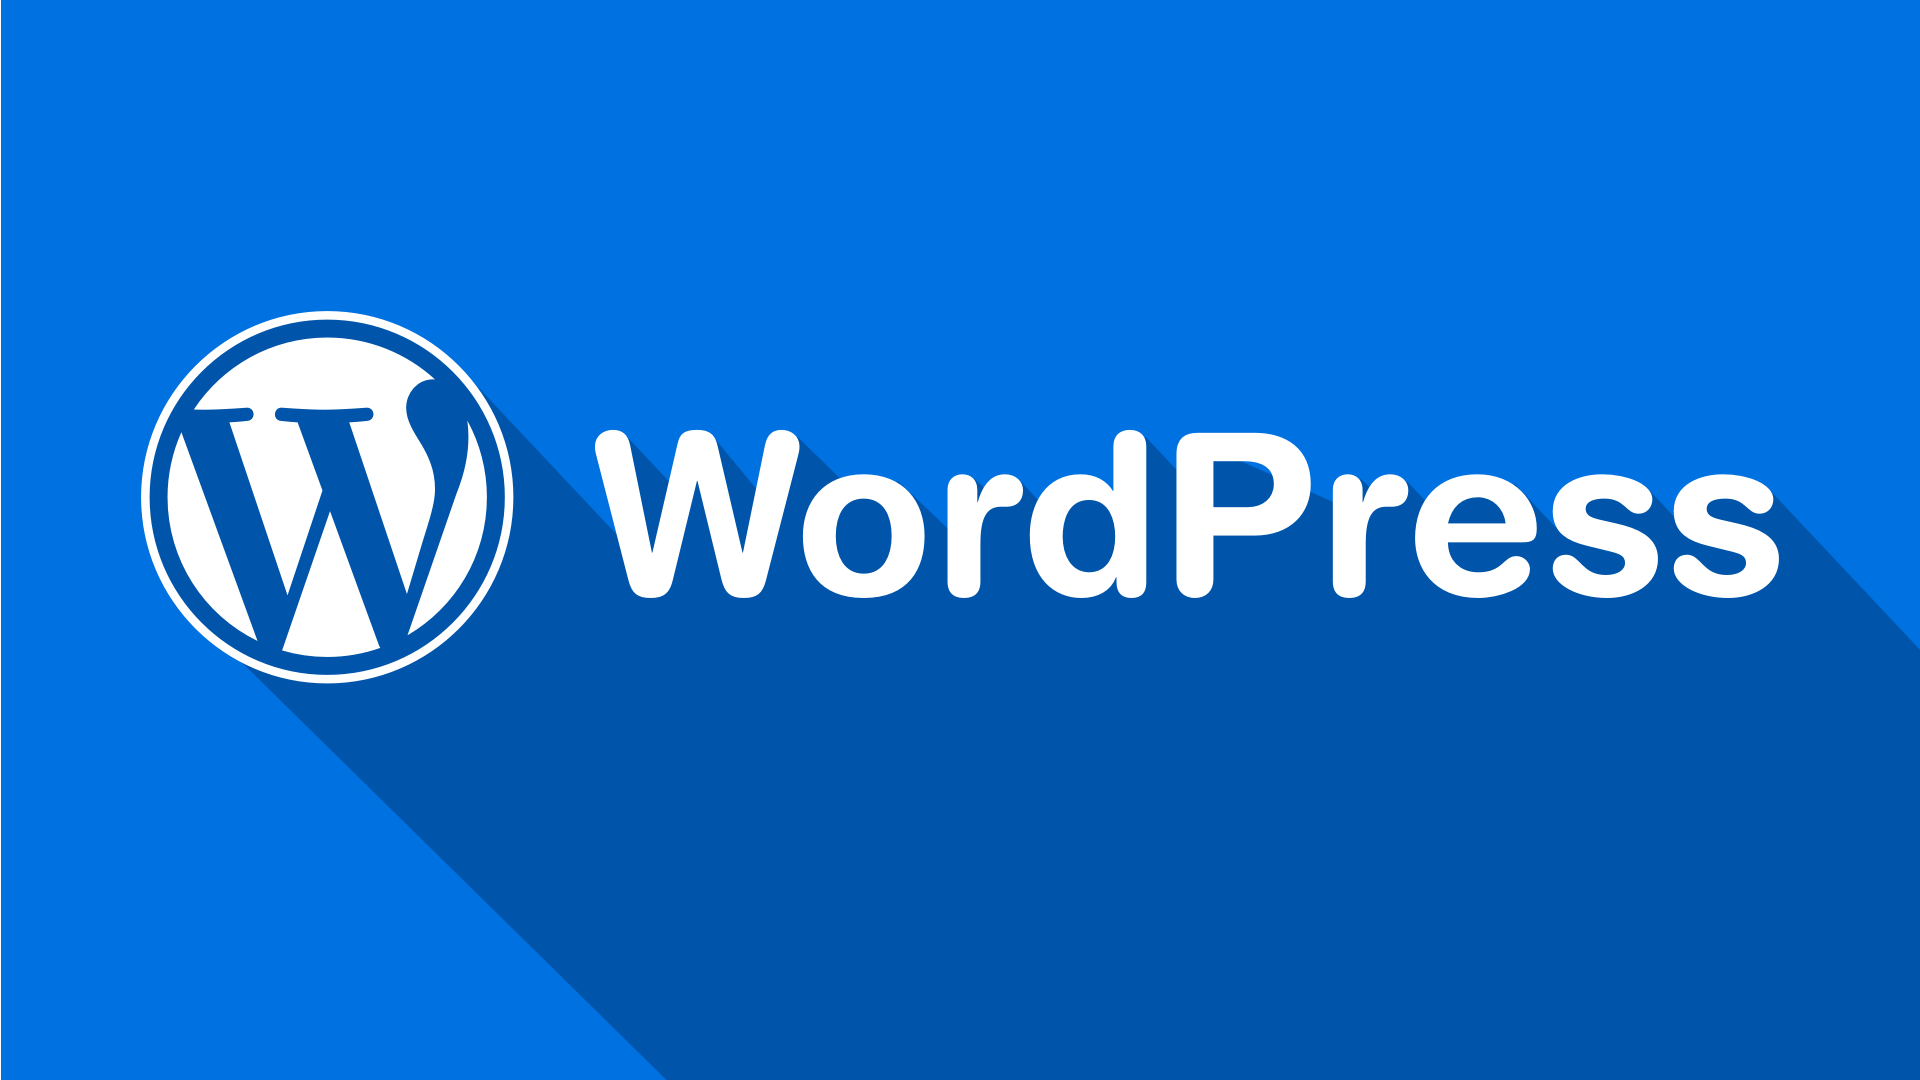 WordPress-Wallpaper-Professional.png